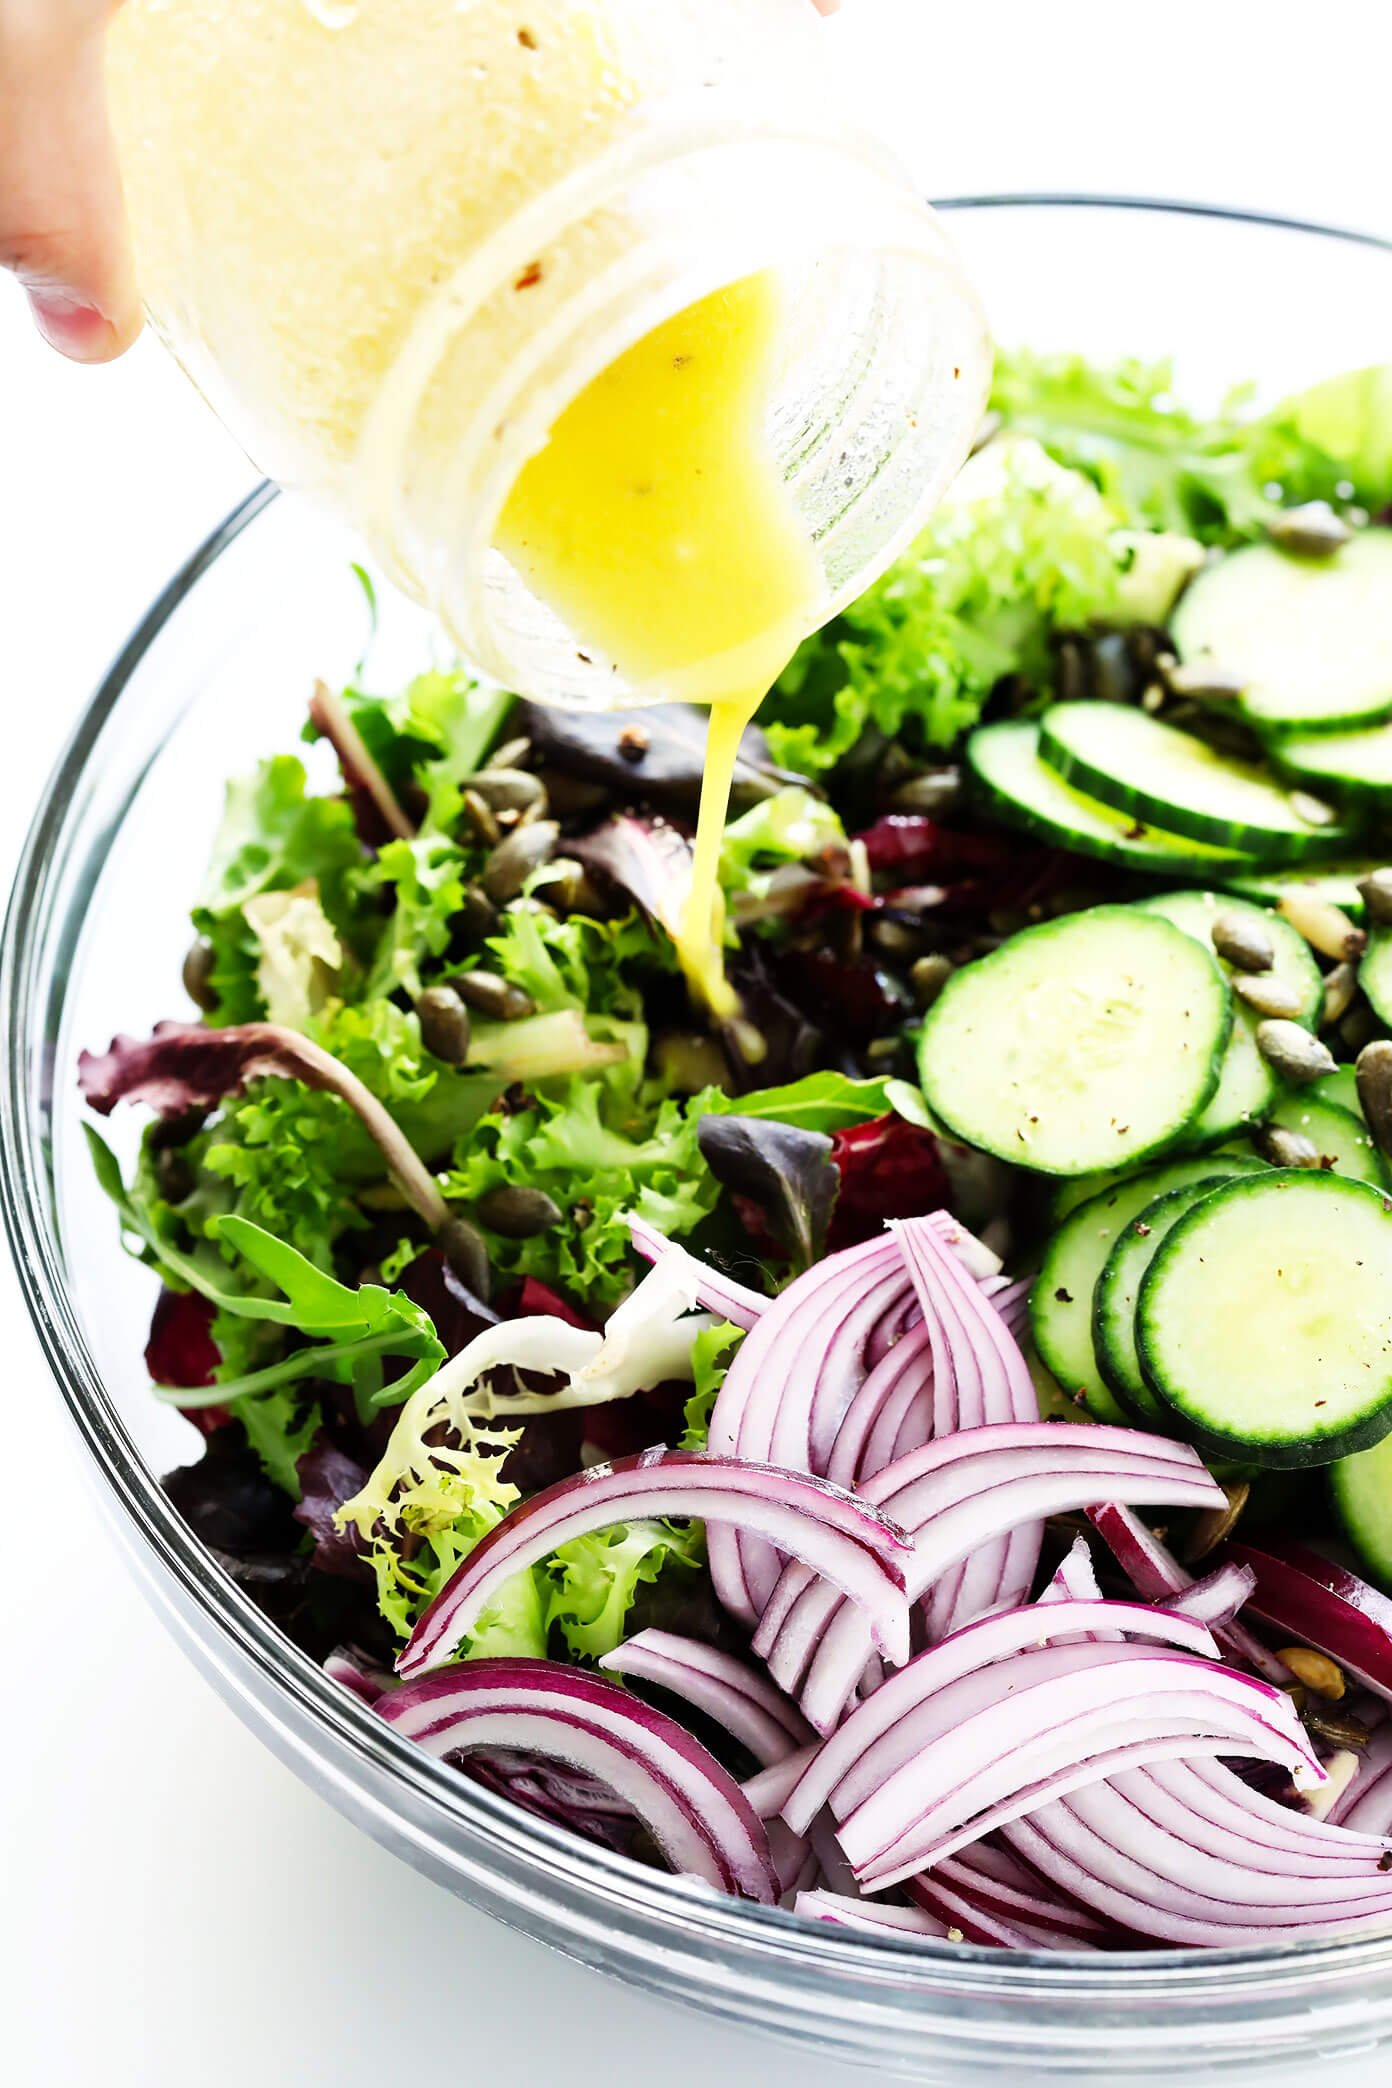 How To Make Our Everyday Salad with Lemon Dijon Salad Dressing